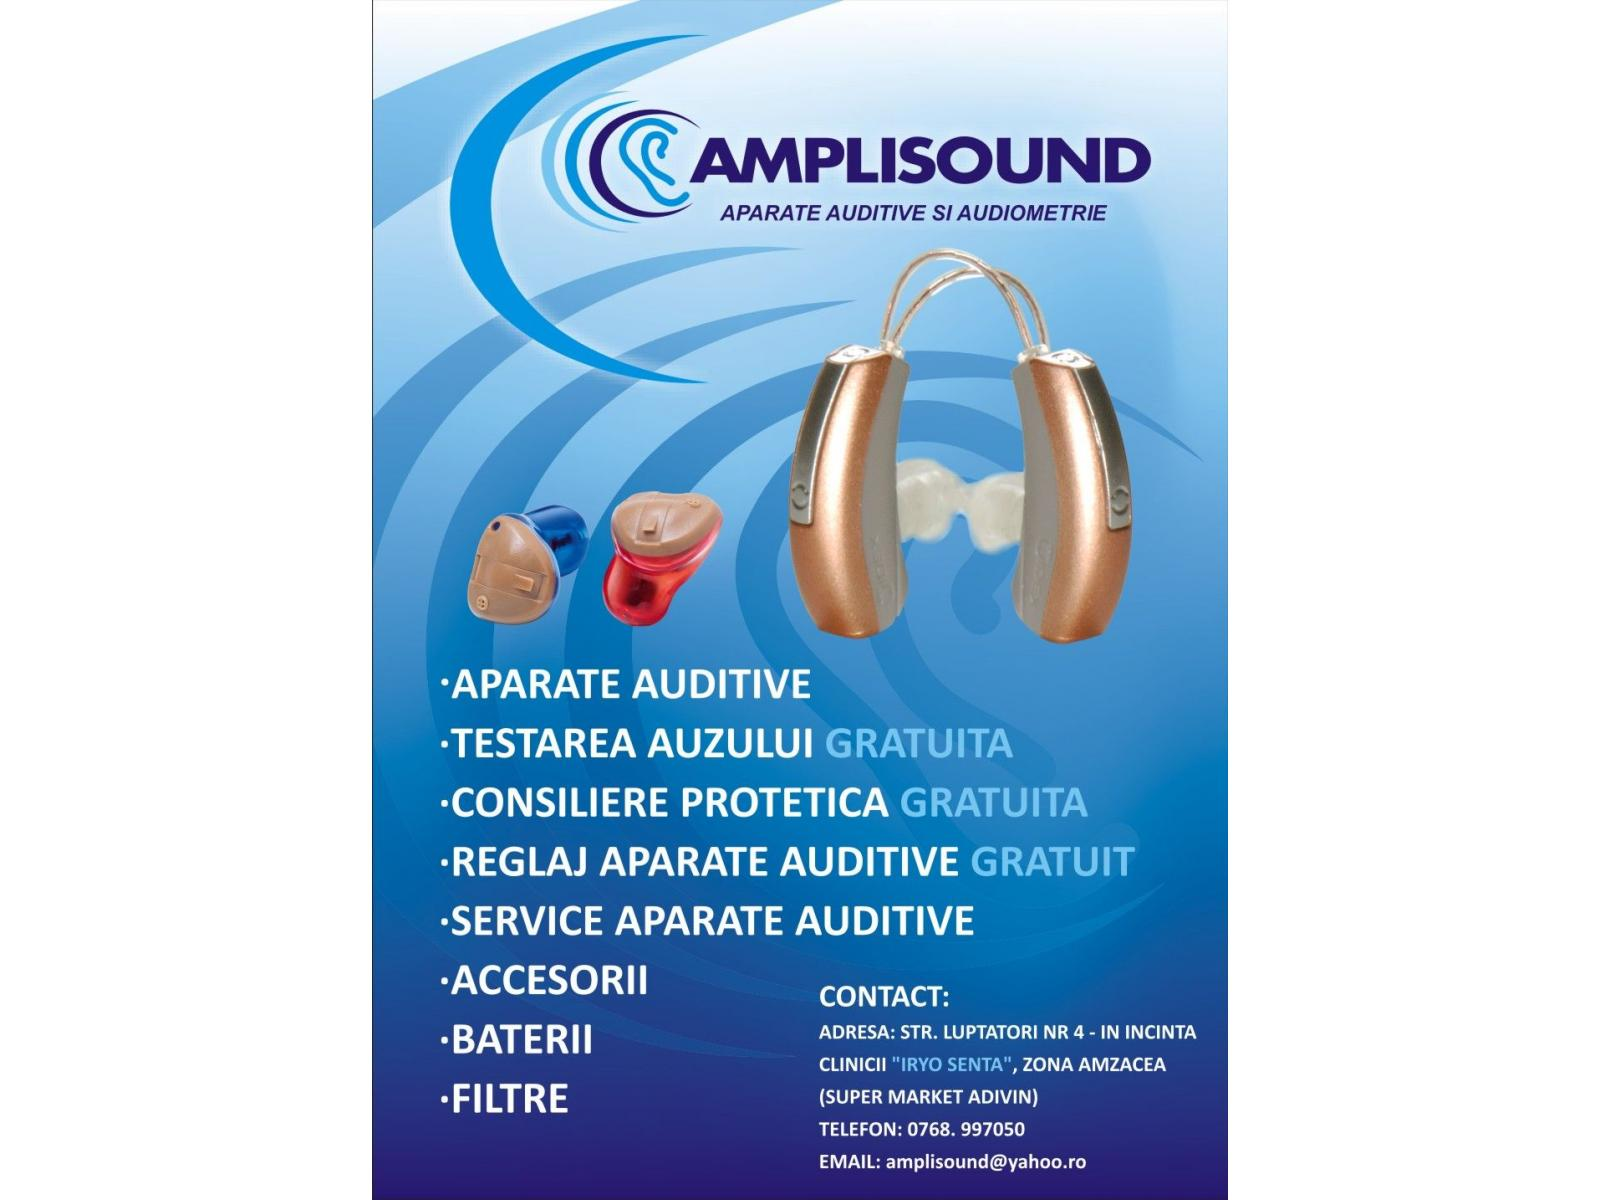 Amplisound aparate auditive - Afis_500x700mm(1).JPG